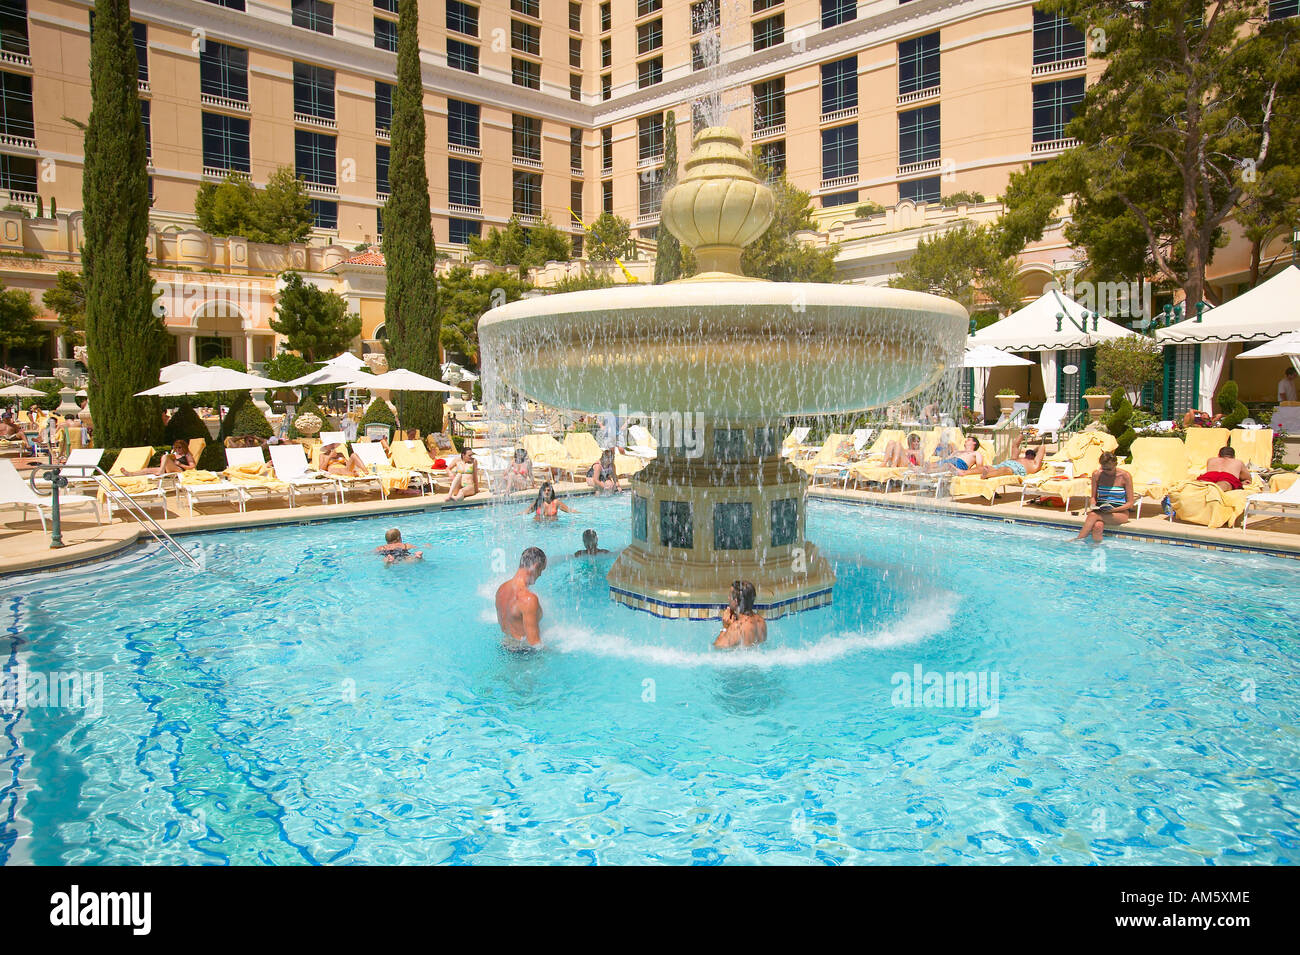 Large Swimming Pool With Swimmers At Bellagio Casino In Las Vegas Nv Stock Photo Royalty Free